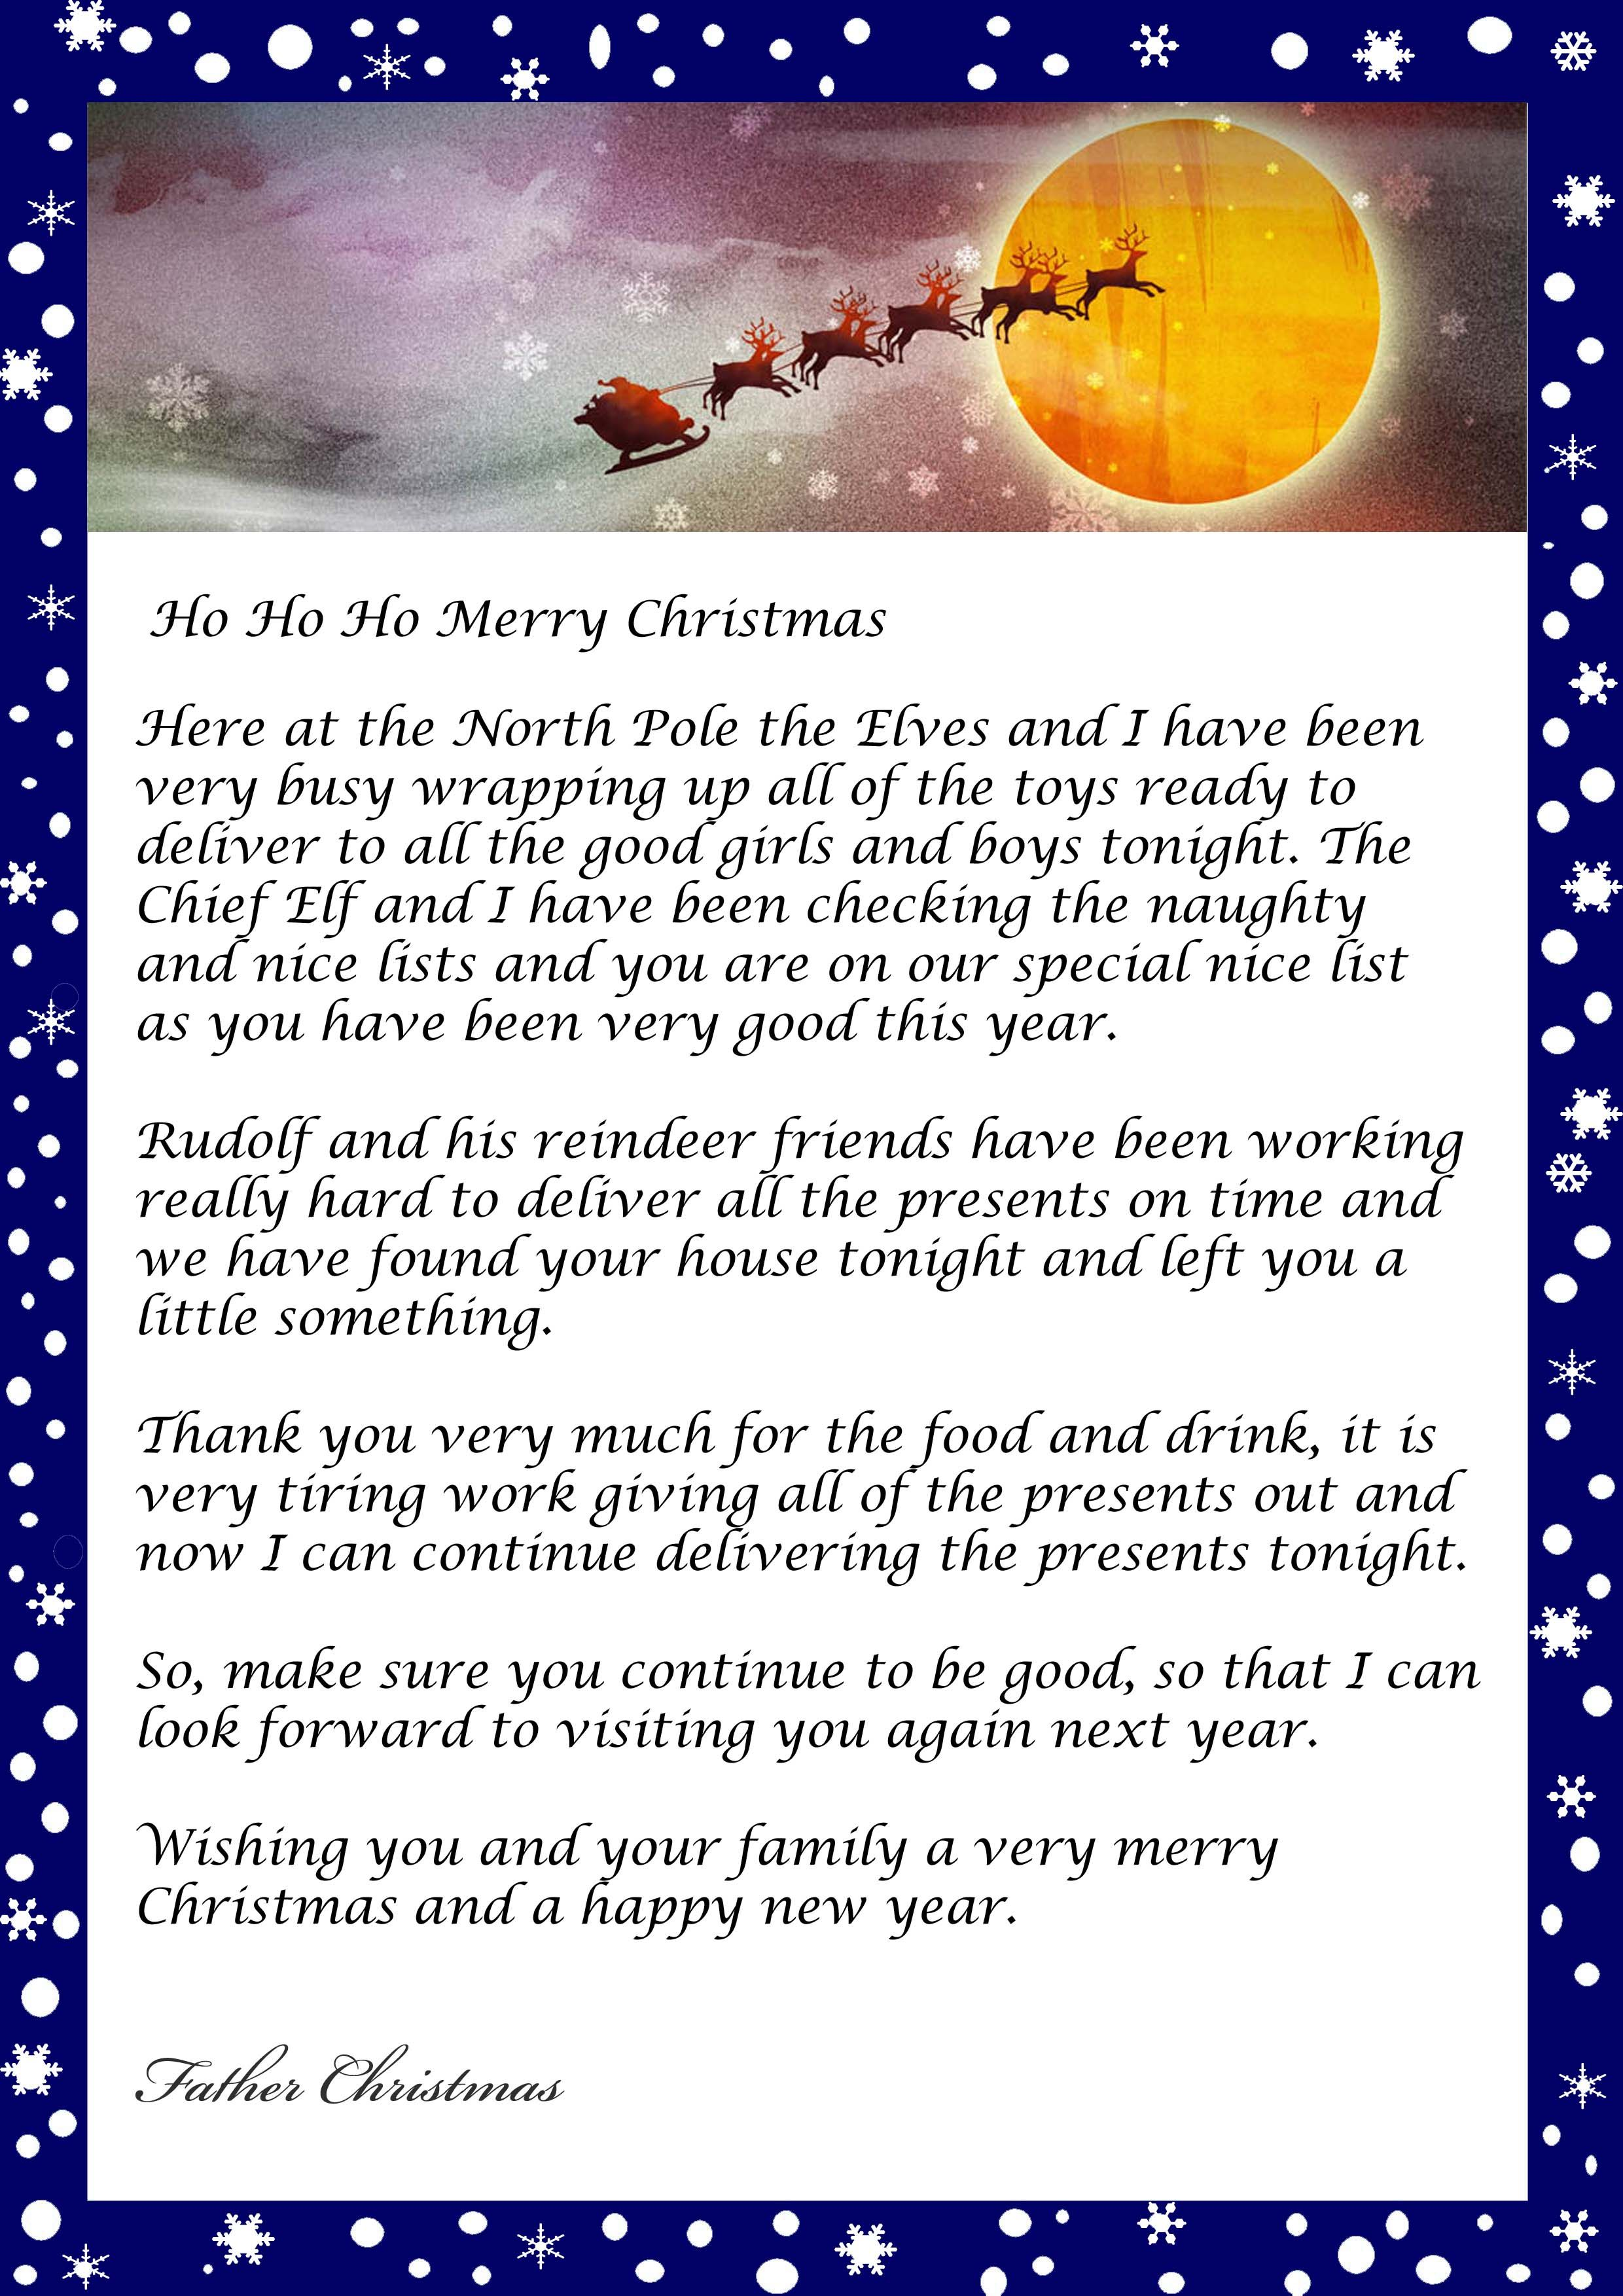 Letter from santa father christmas template for christmas eve letter from santa father christmas template for christmas eve spiritdancerdesigns Choice Image